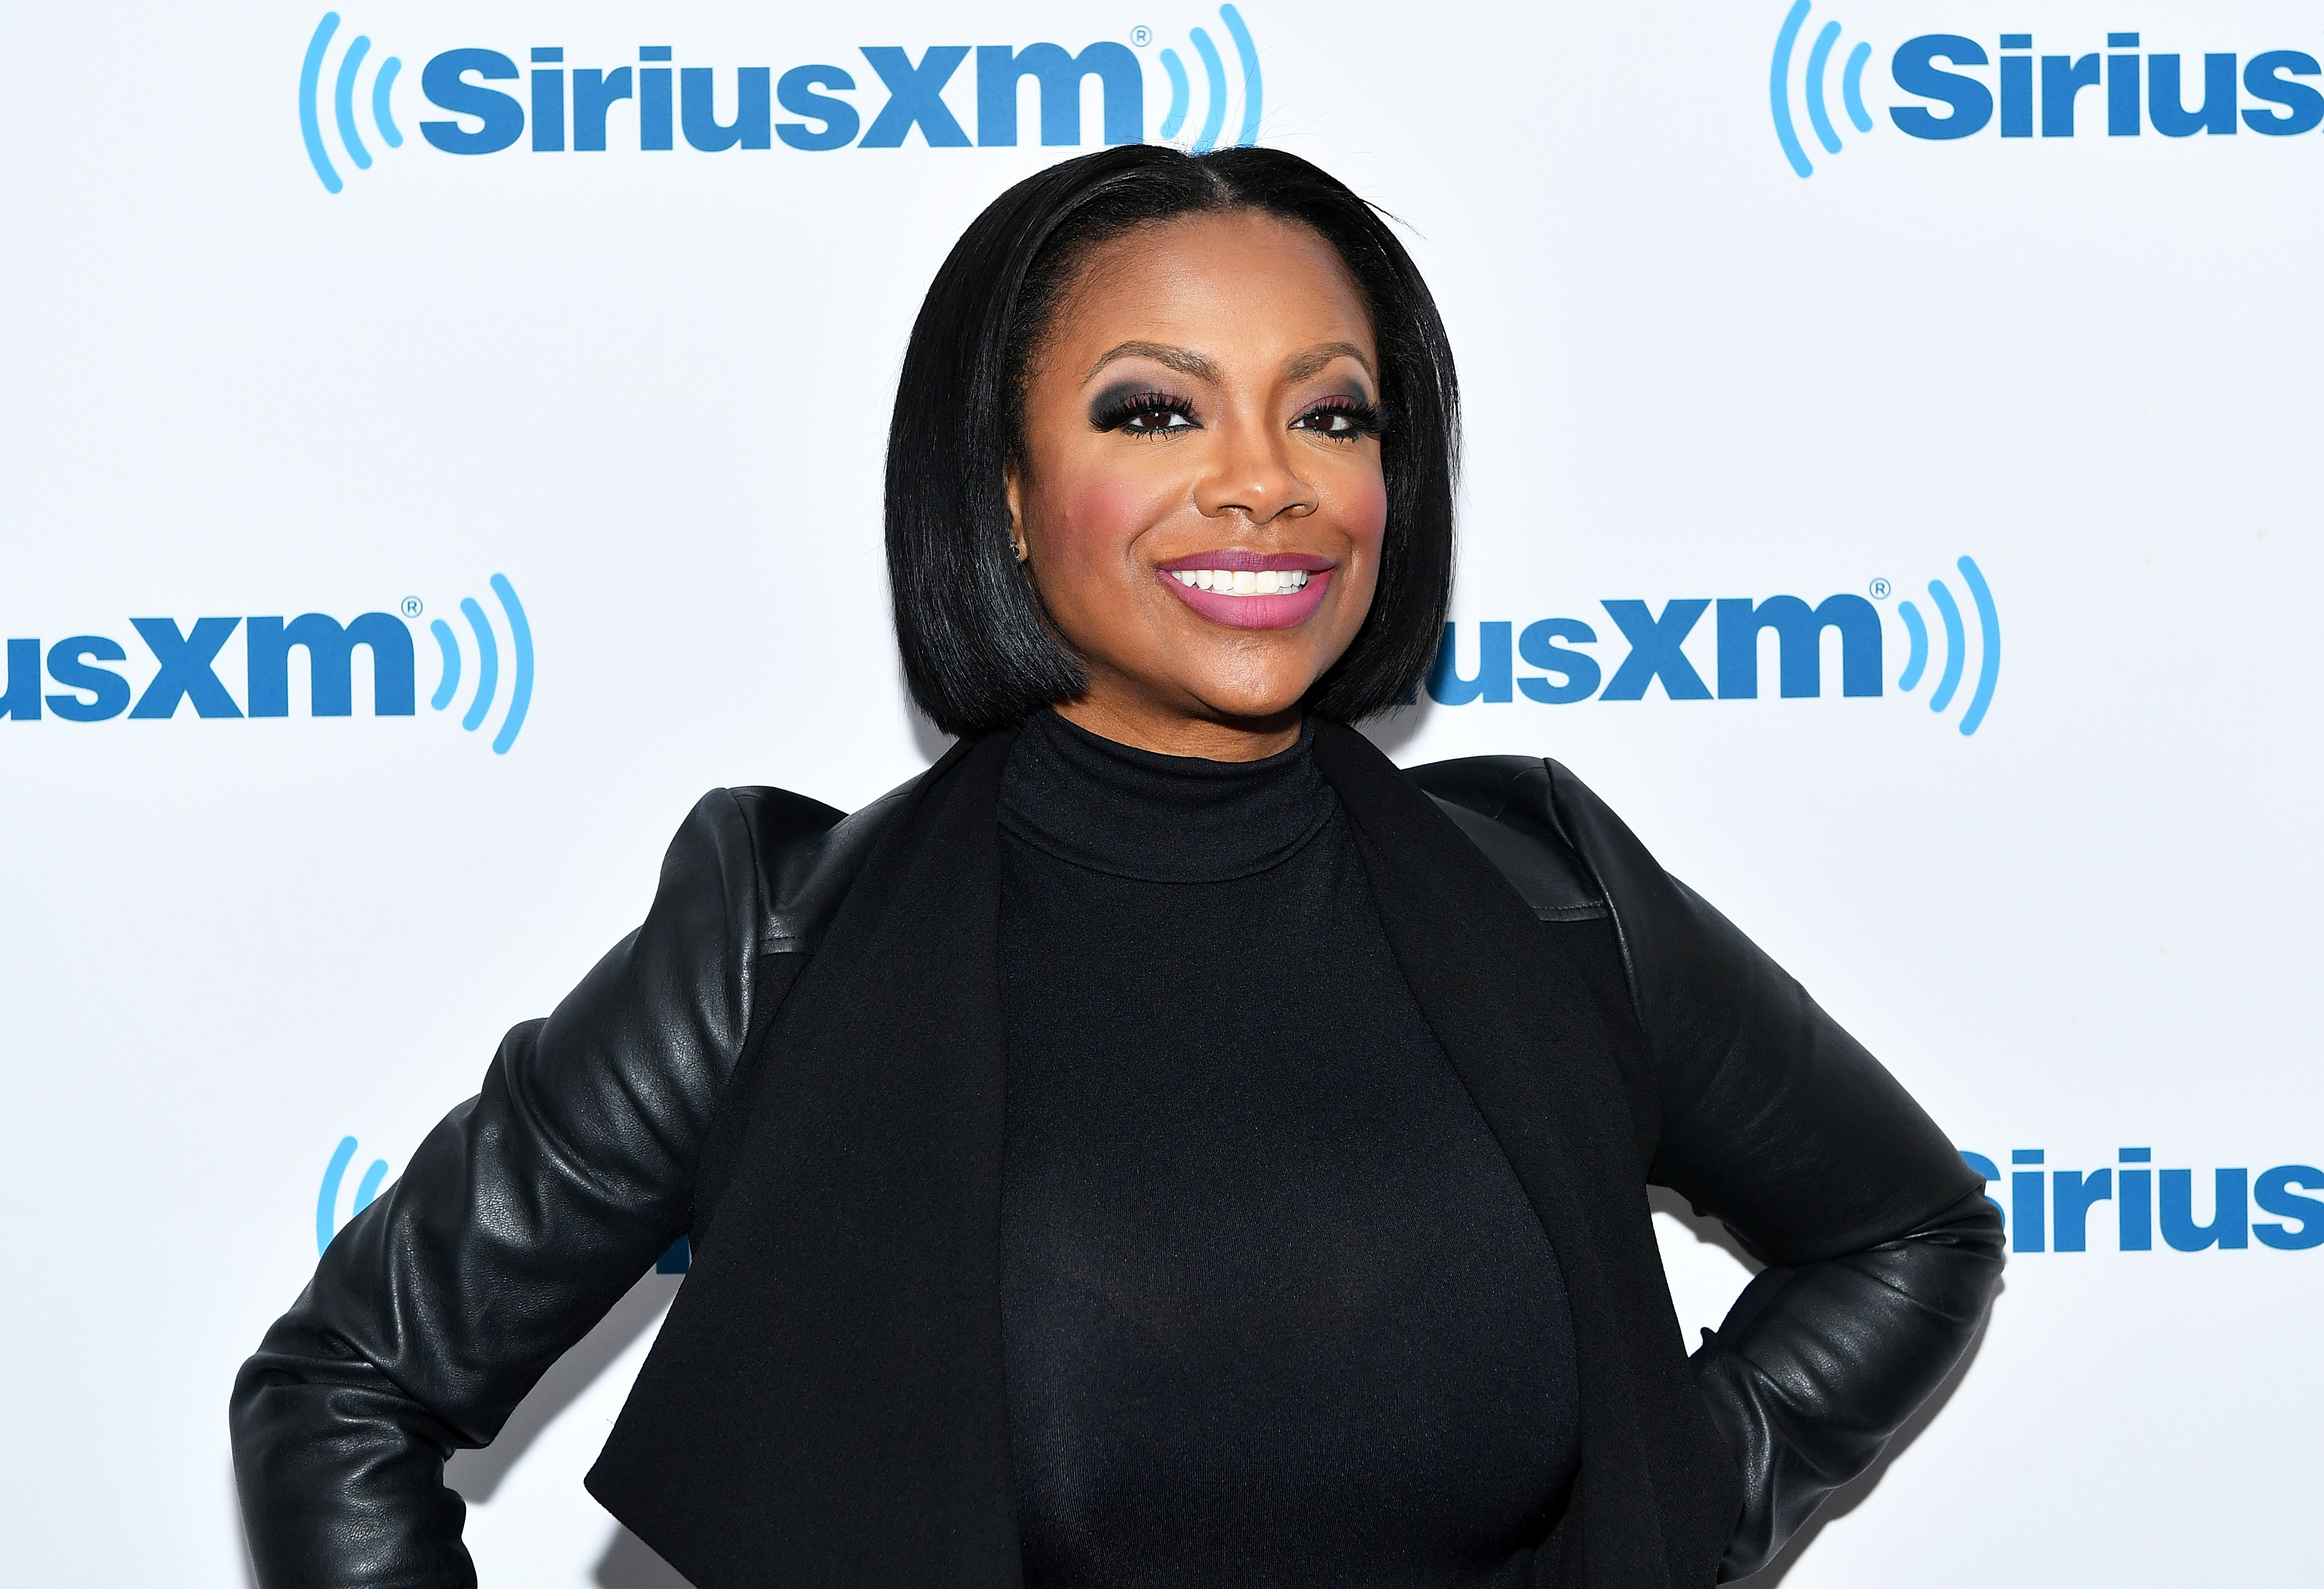 Kandi Burruss visiting the SiriusXM Studios in March 2018. | Photo: Getty Images